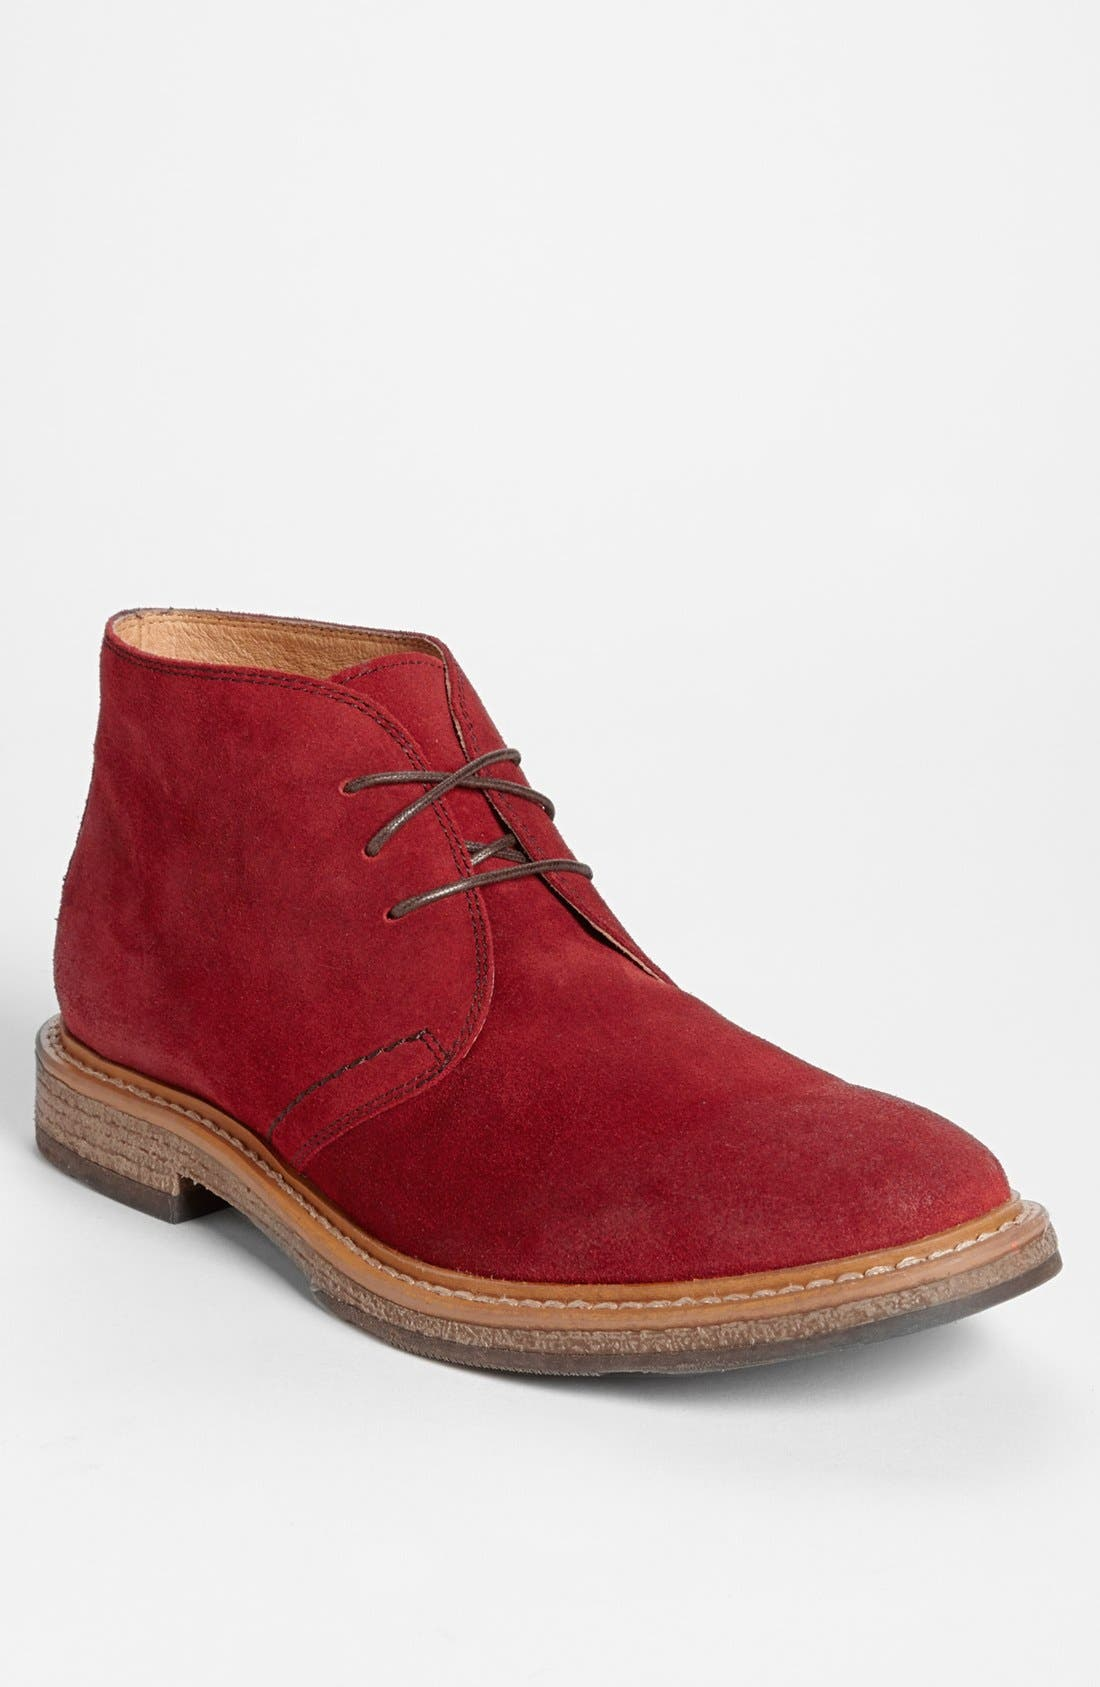 'Canyon' Chukka Boot,                         Main,                         color, Red